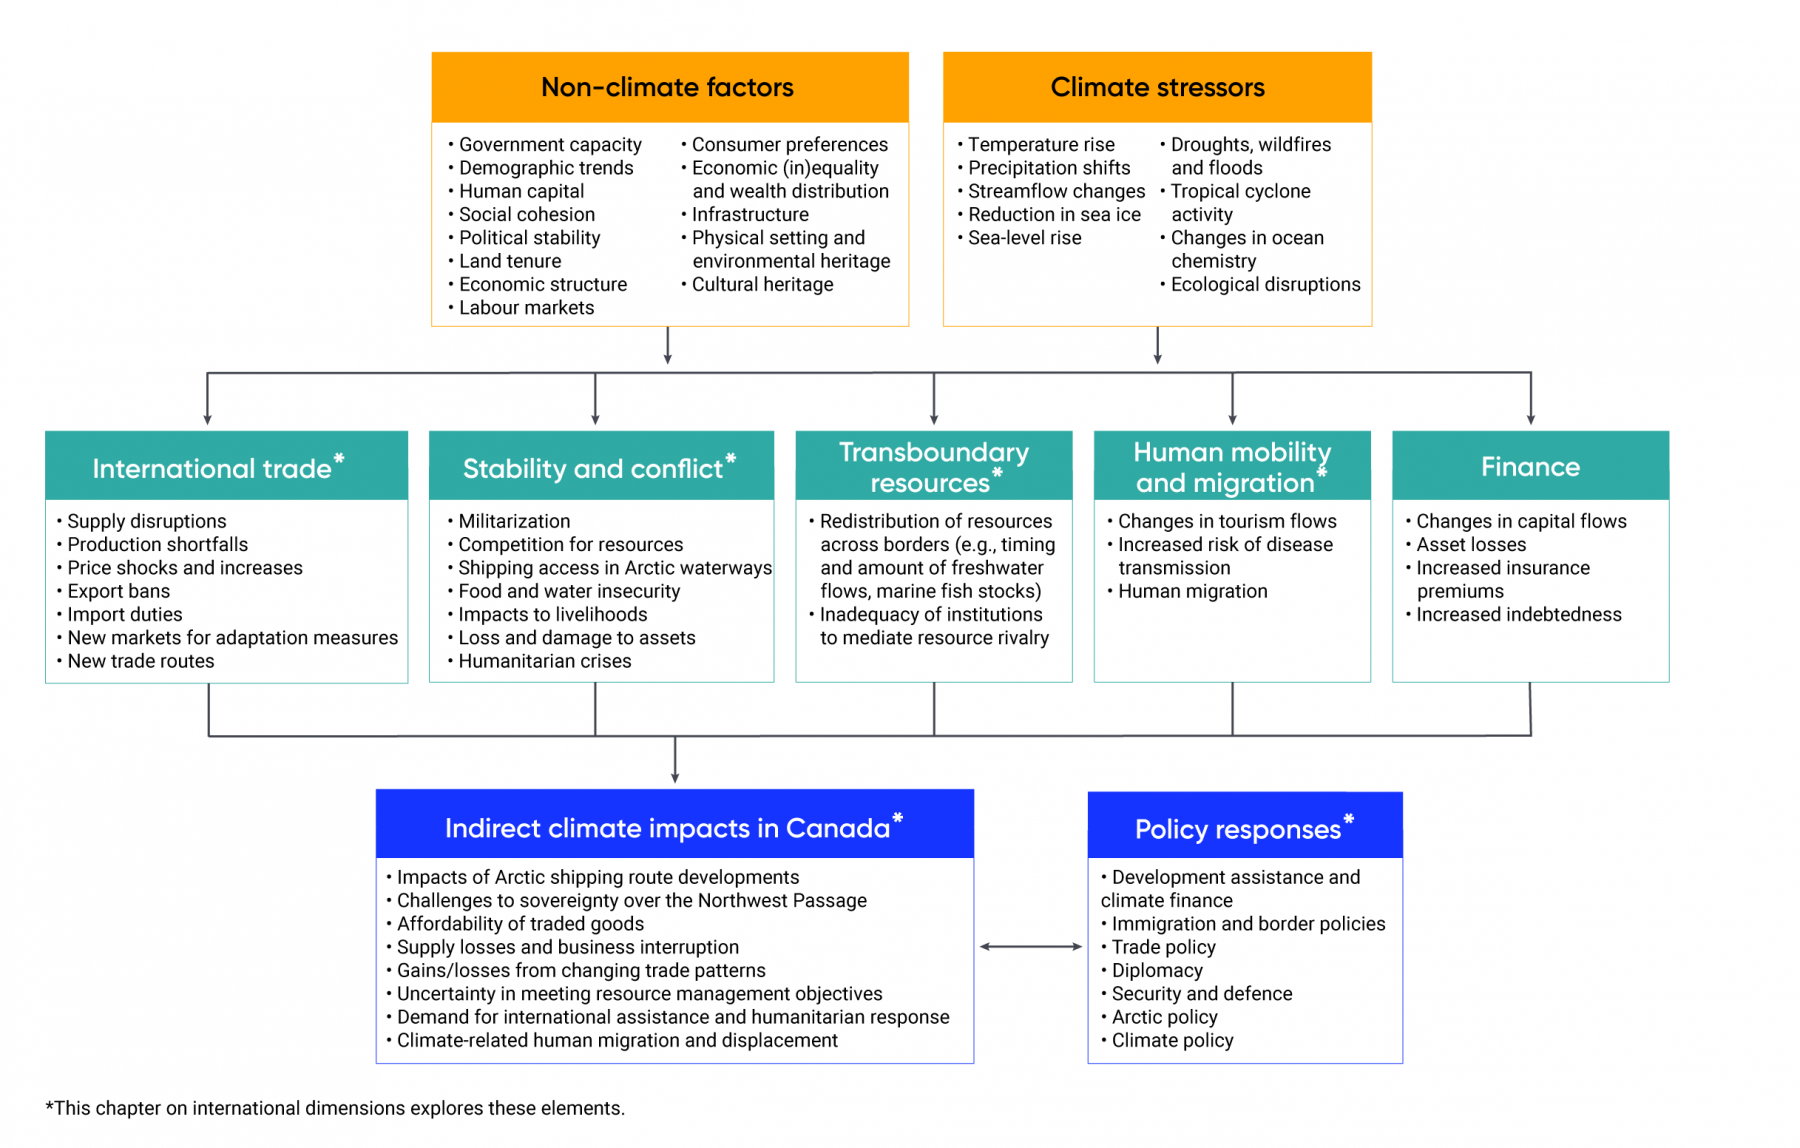 Diagram shows that non-climate factors, such as government capacity, demographic trends, economic inequality and wealth distribution, and climate stressors, such as temperature rise, sea-level rise, and ecological disruptions, lead to impacts on international trade, stability and conflict, transboundary resources, human mobility and migration, and finance. These impacts have indirect impacts in Canada, such as impacts to Arctic shipping route developments, the affordability of traded goods, and increased demand for international assistance and humanitarian response. These impacts on Canada require policy responses, including development assistance and climate finance, immigration and border policies, trade policy, diplomacy, security and defence, Arctic policy, and climate policy.